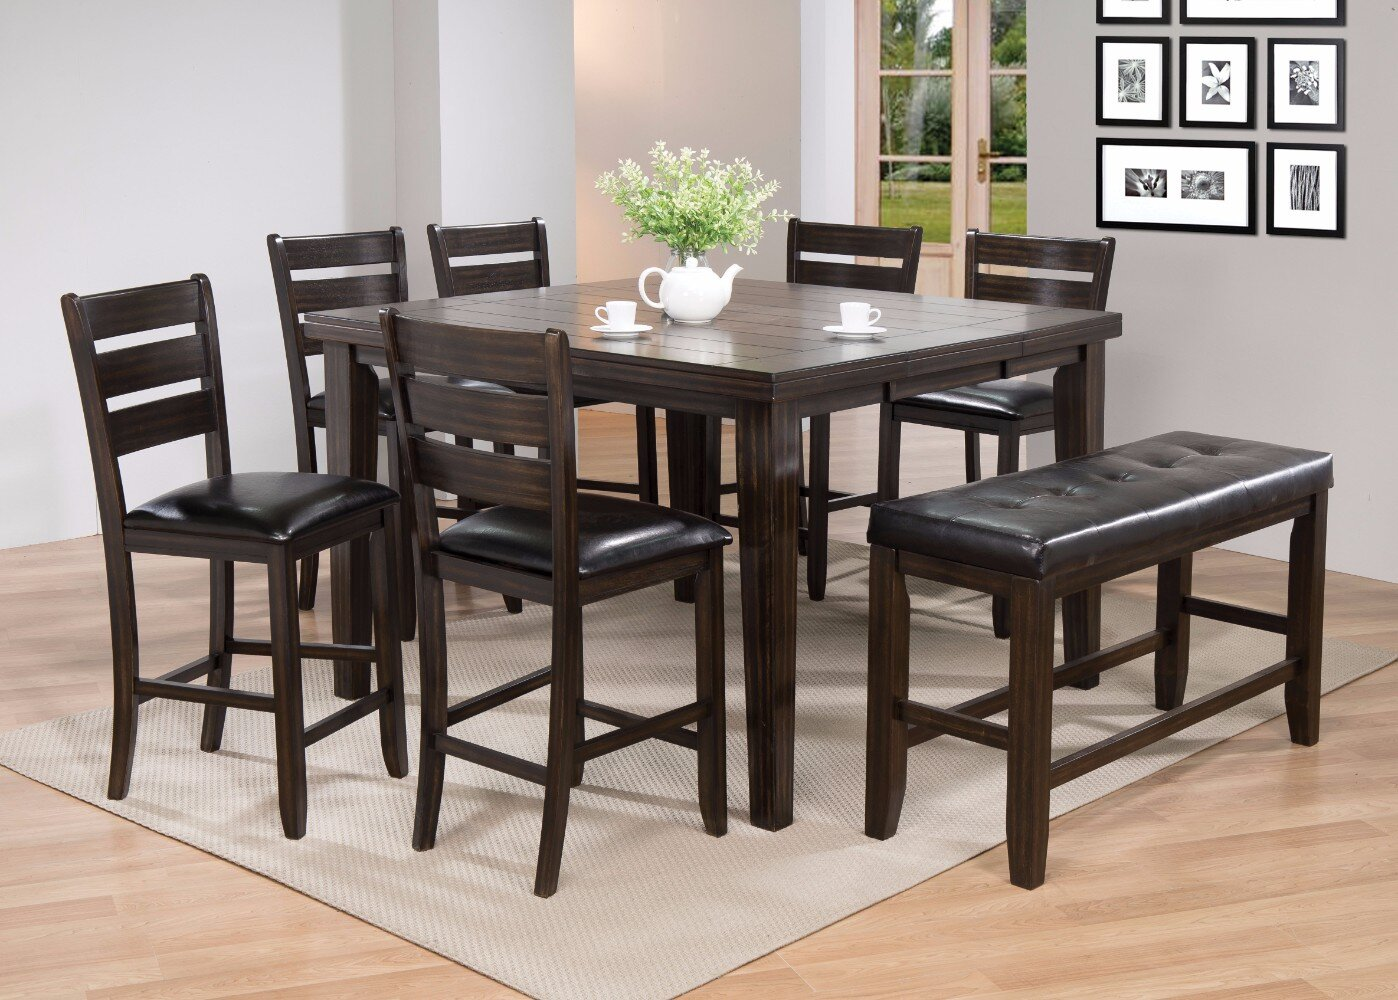 54 Inches Winston Porter Kitchen Dining Tables You Ll Love In 2021 Wayfair